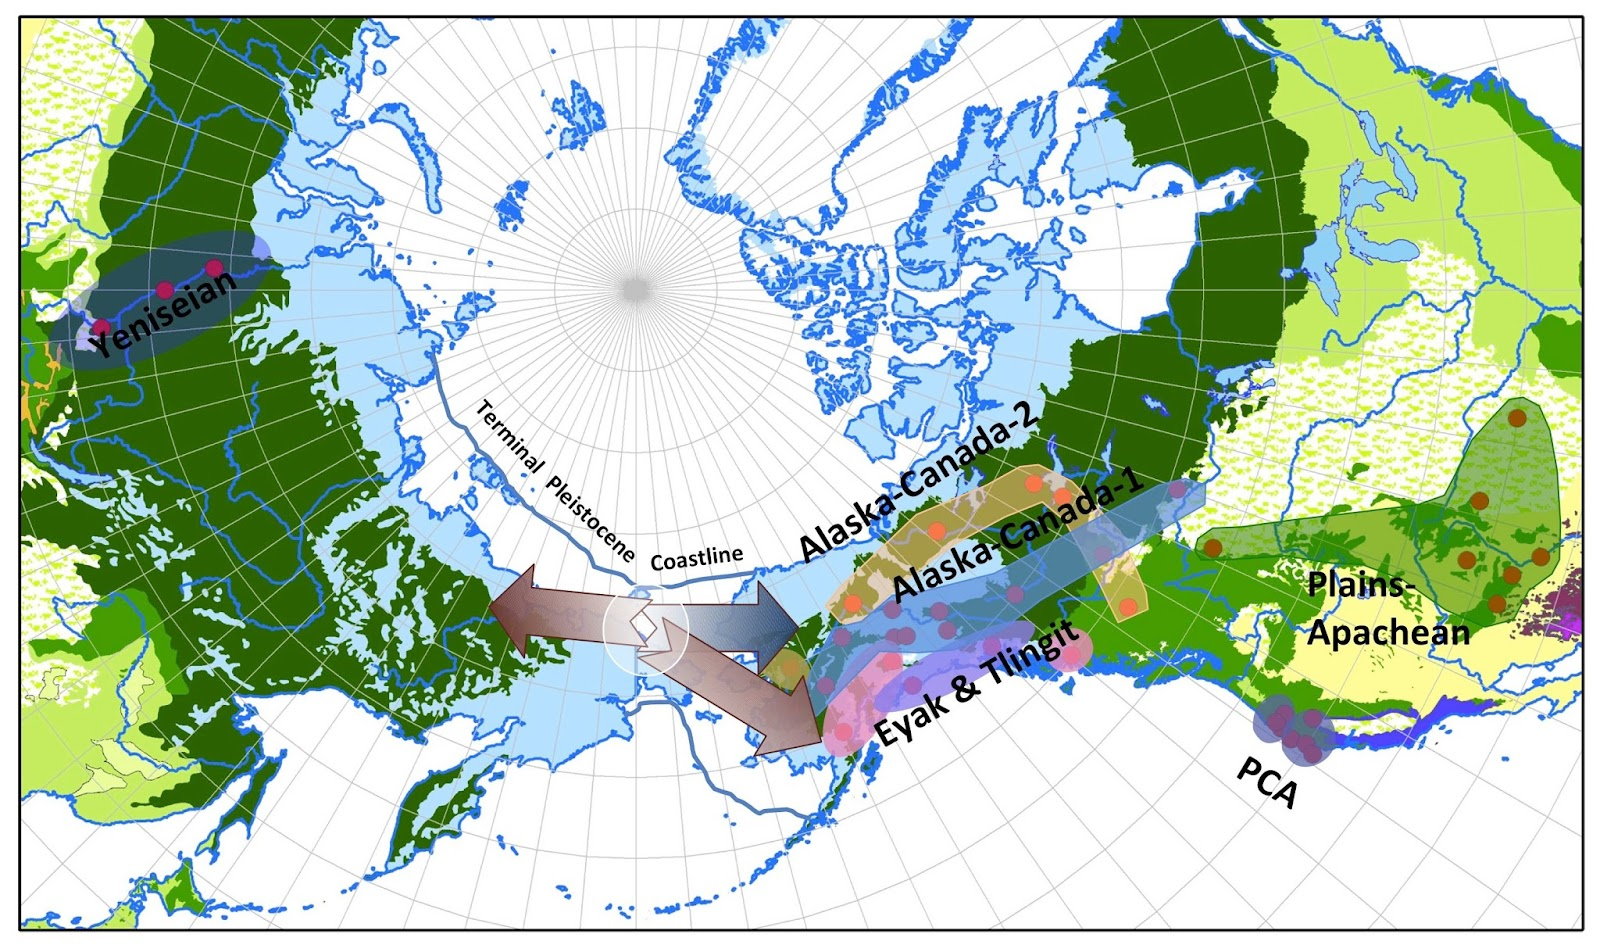 The merger of North America, Japan, Russian lands